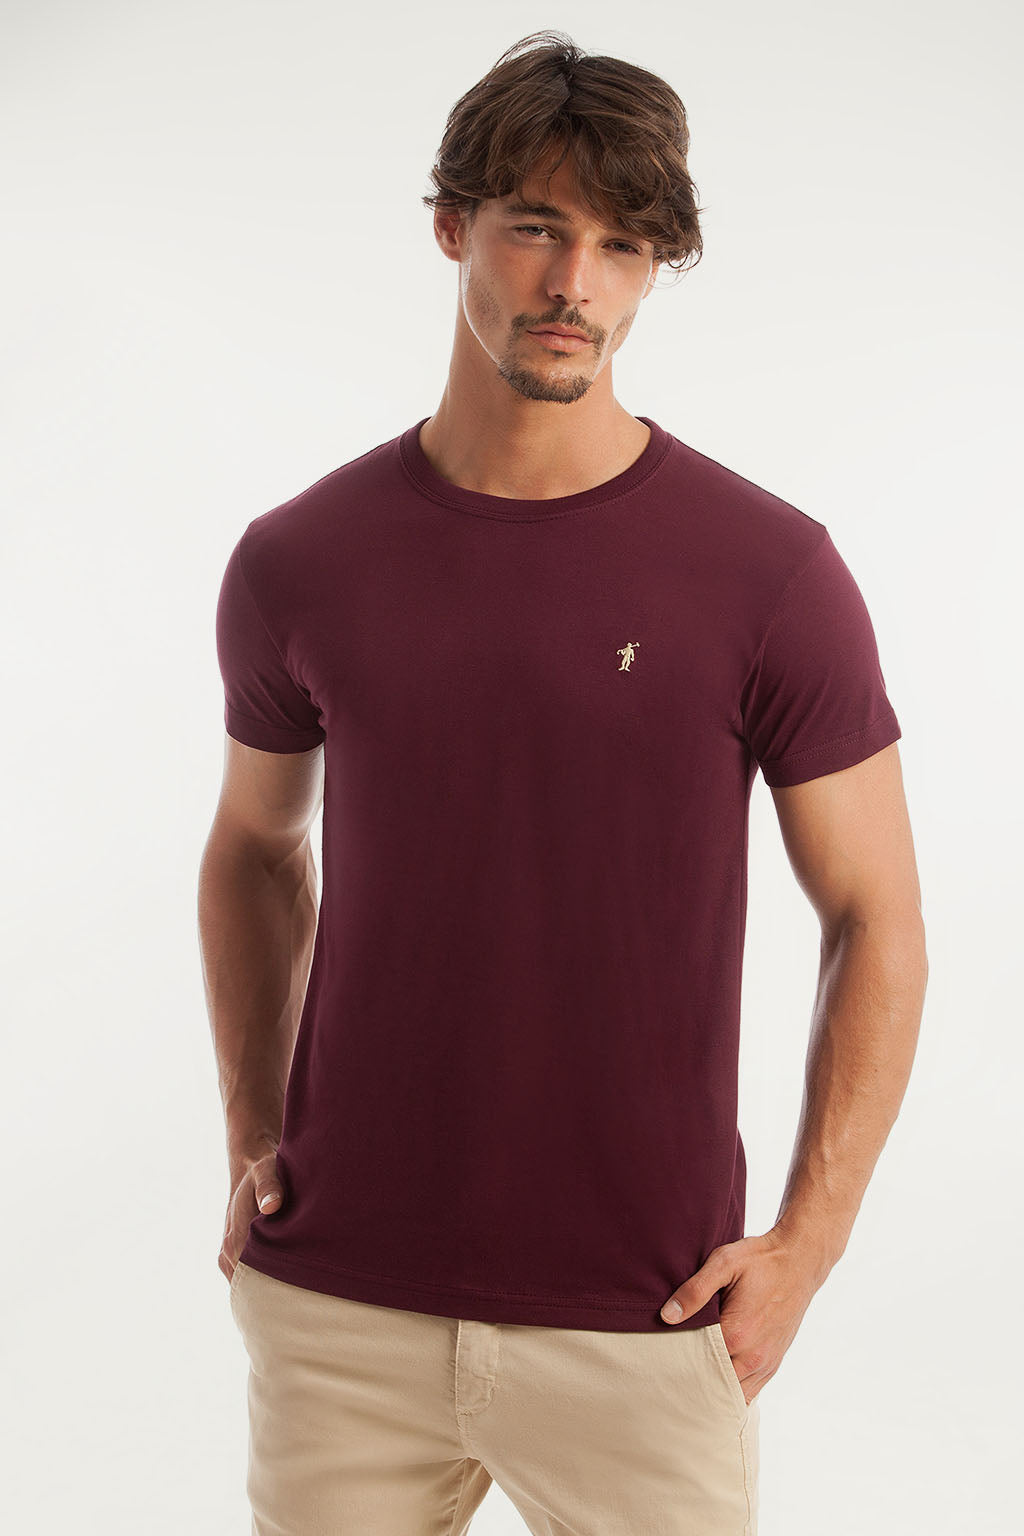 Burgundy cotton tee with embroidered logo